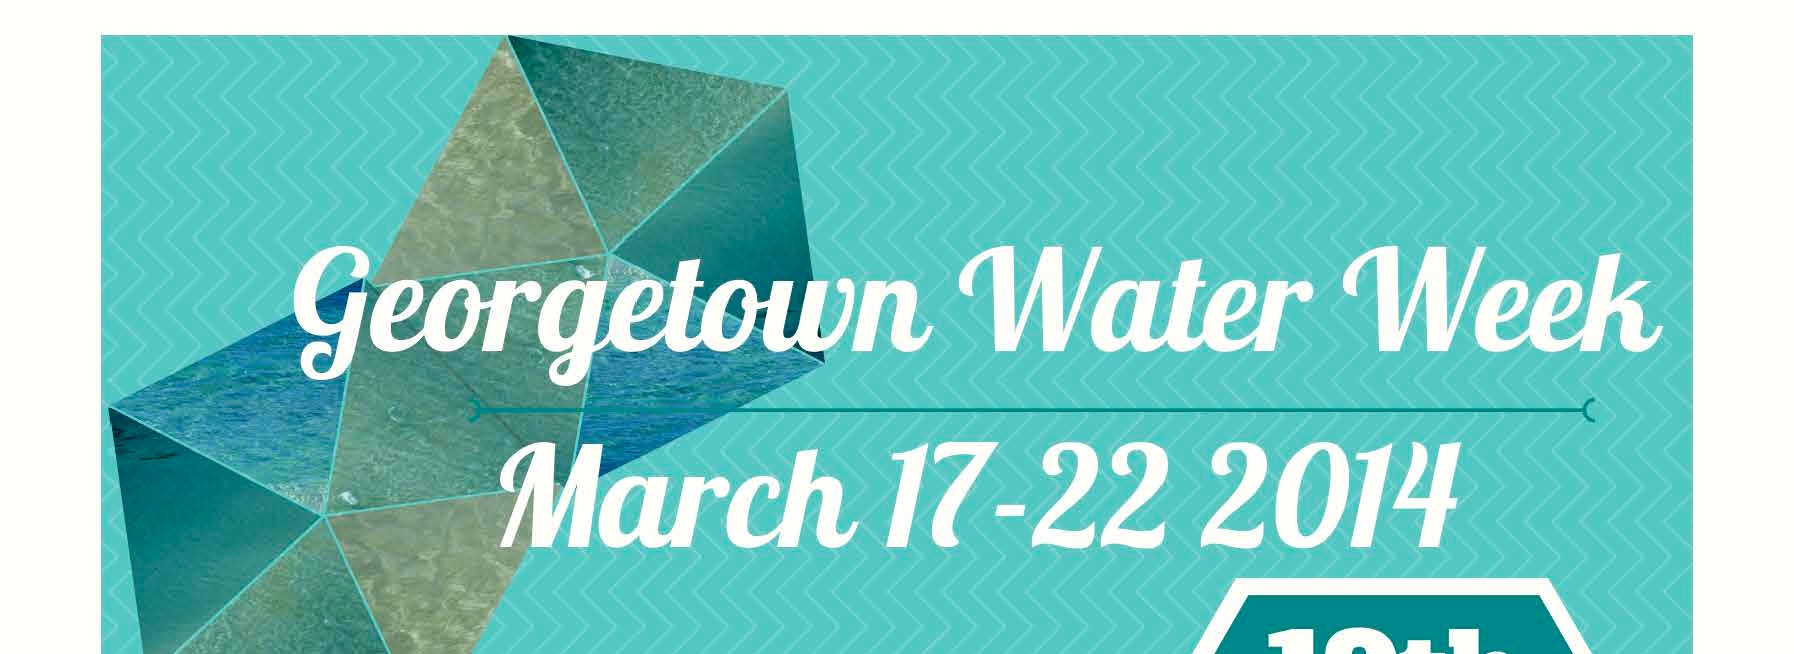 Georgetown Water Week (2) (1)